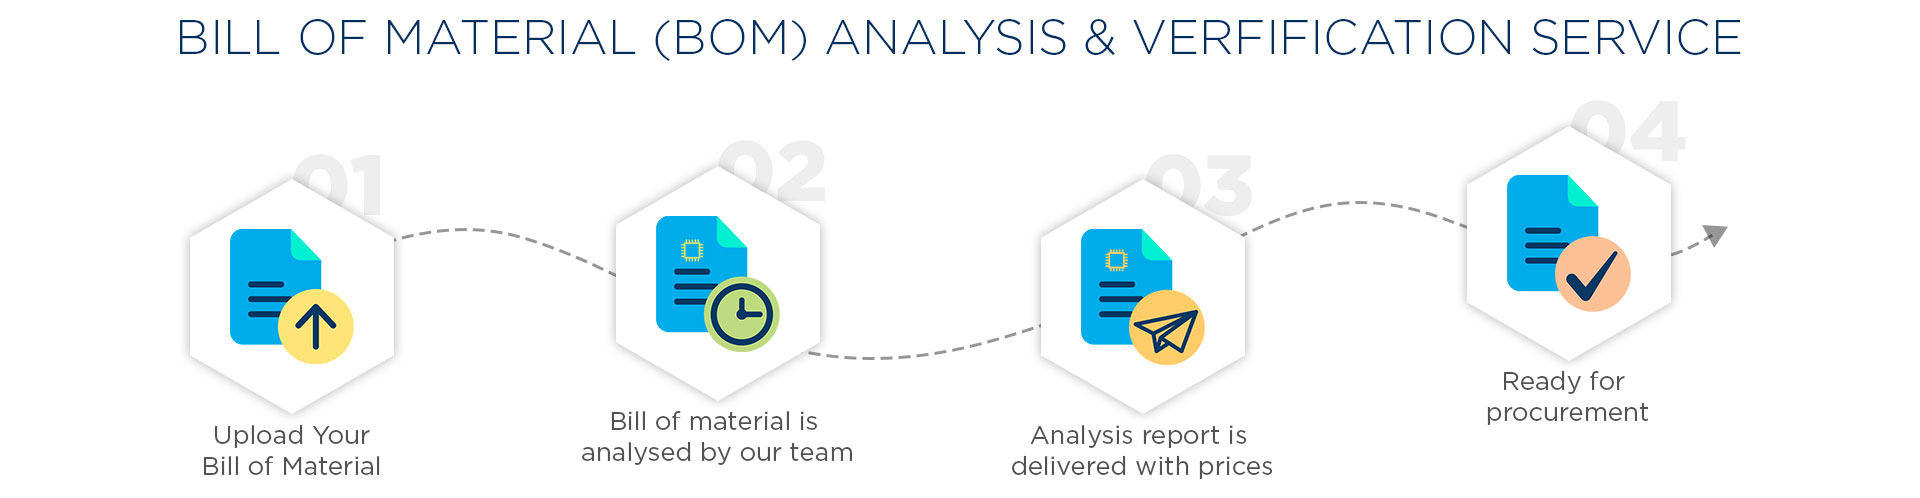 Bill of Material (BoM) analysis and verification service